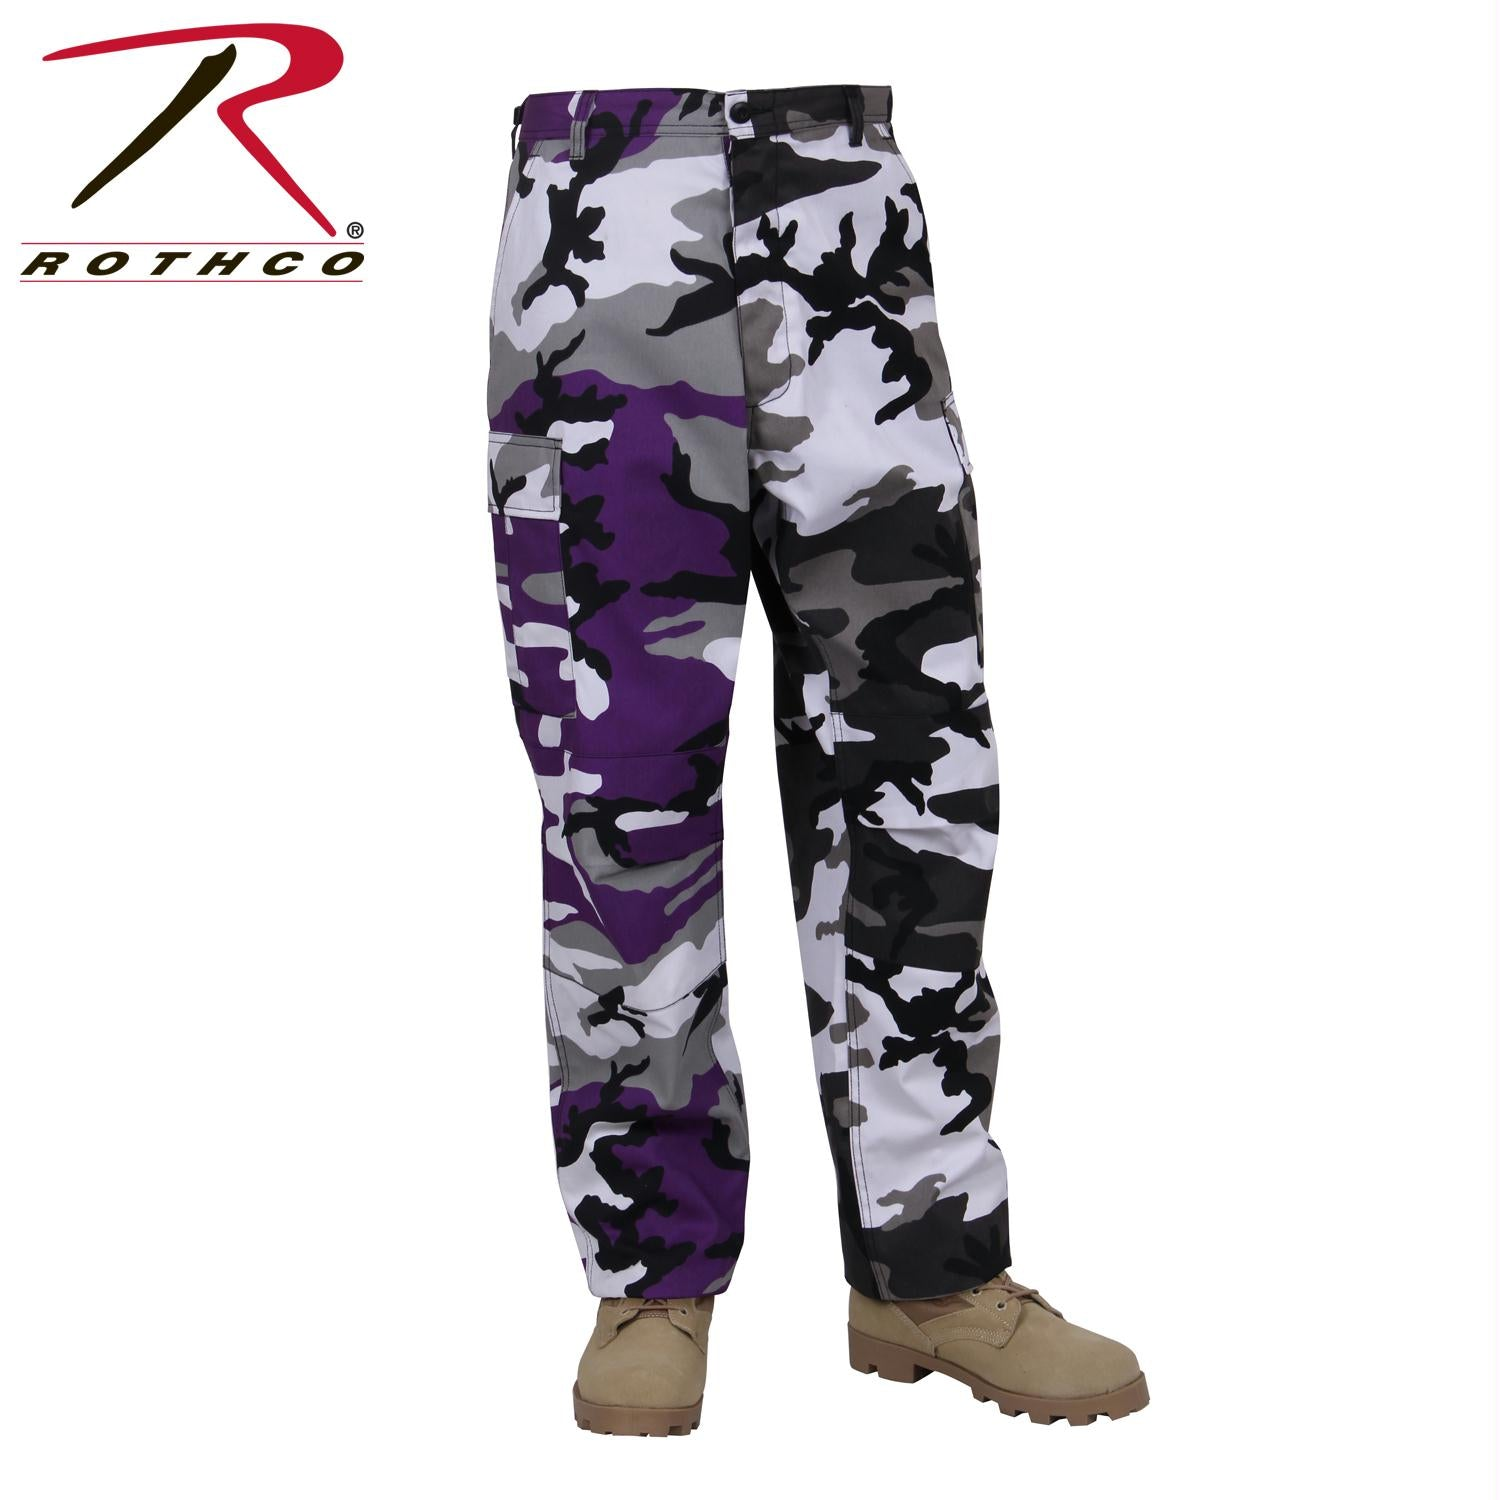 Rothco Two-Tone Camo BDU Pants - Ultra Violet Purple / City Camo / XL